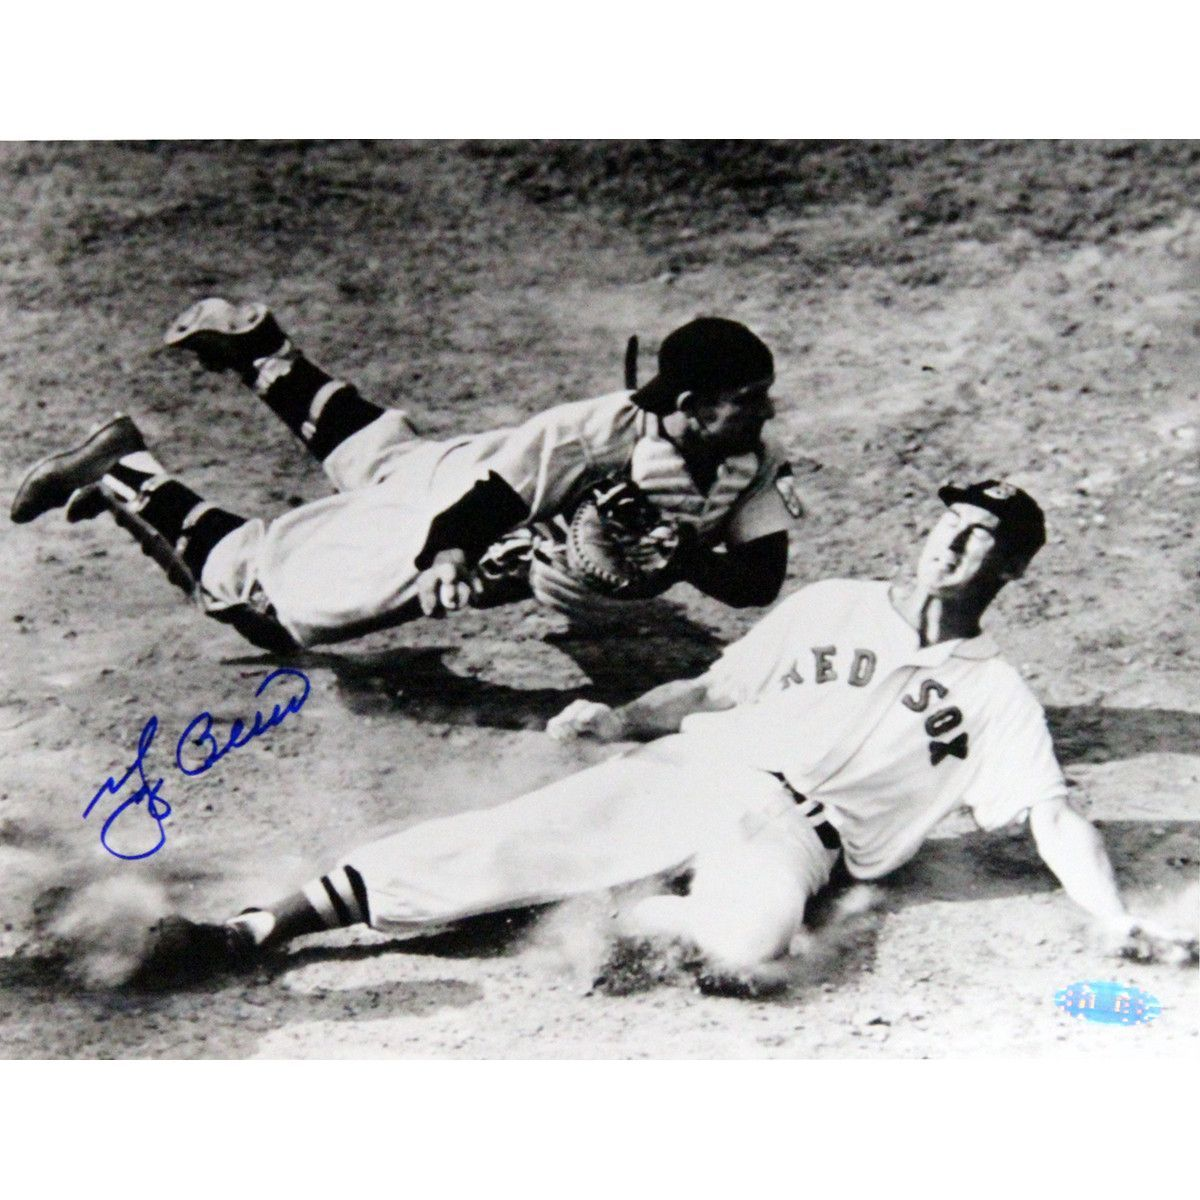 Yogi Berra Signed Tagging Ted Williams at Home Plate 8x10 Photo